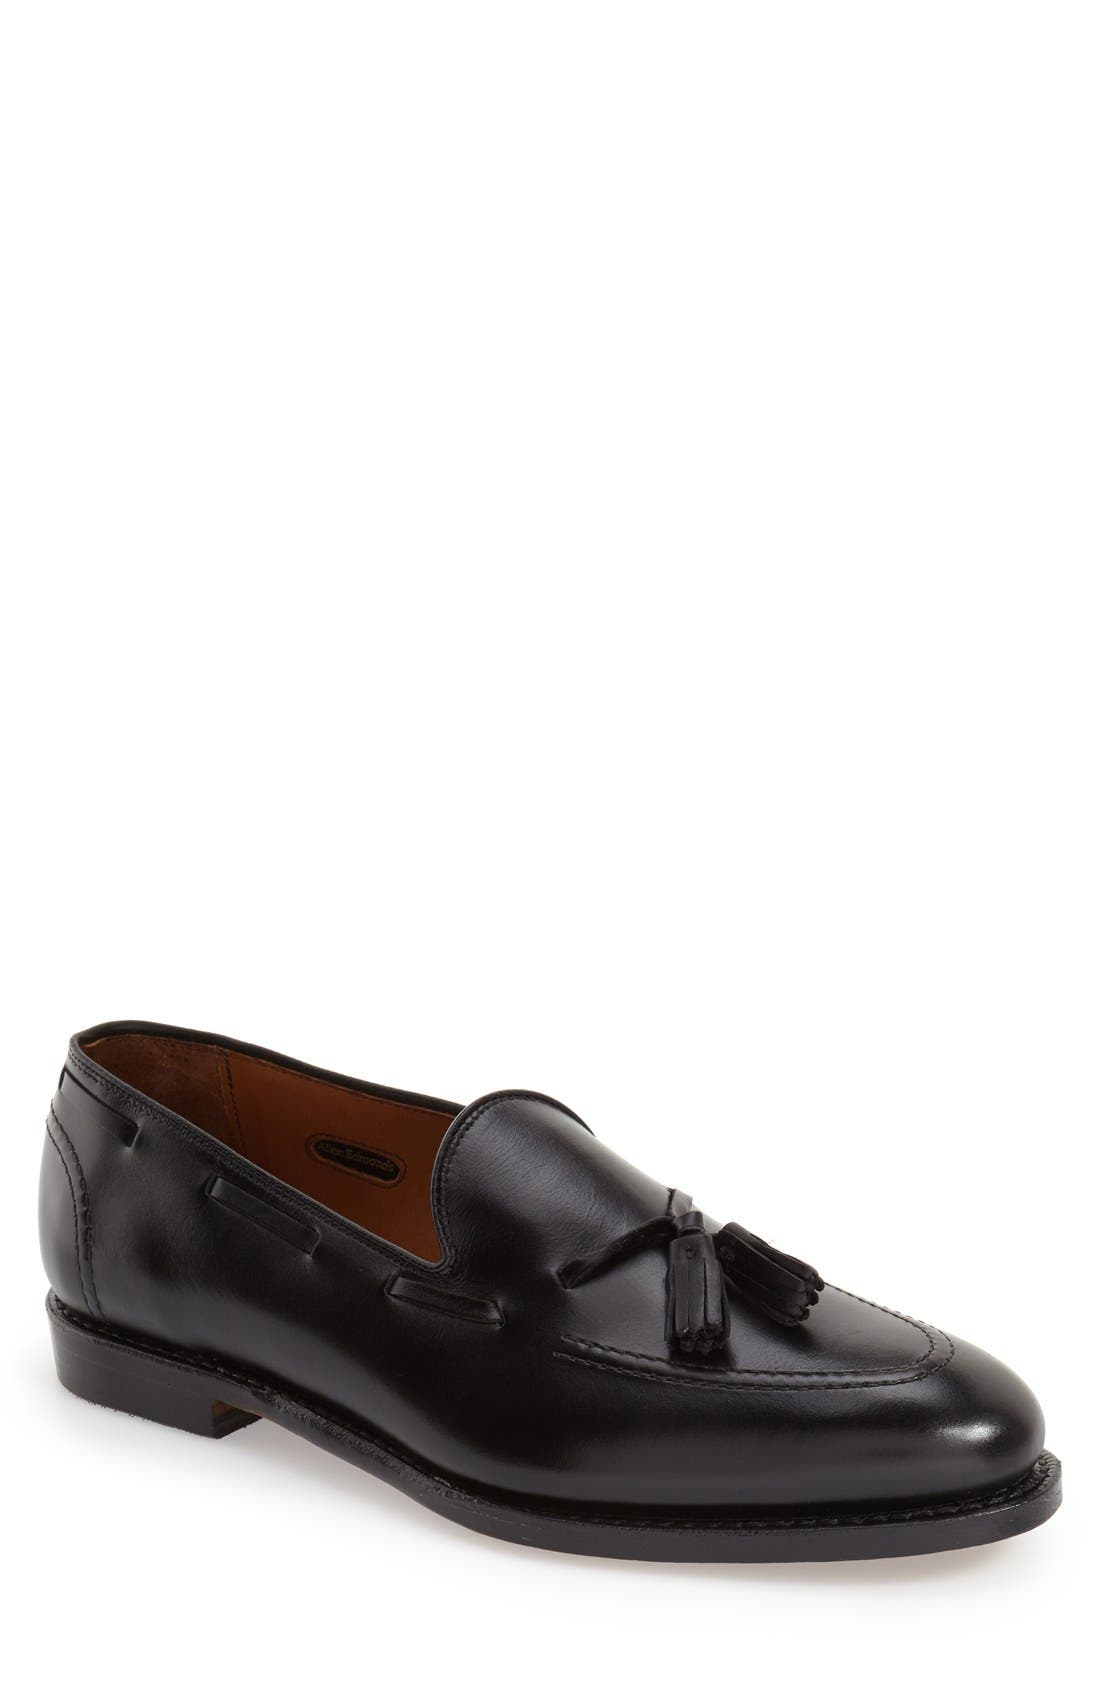 'Acheson' Tassel Loafer,                             Main thumbnail 1, color,                             BLACK